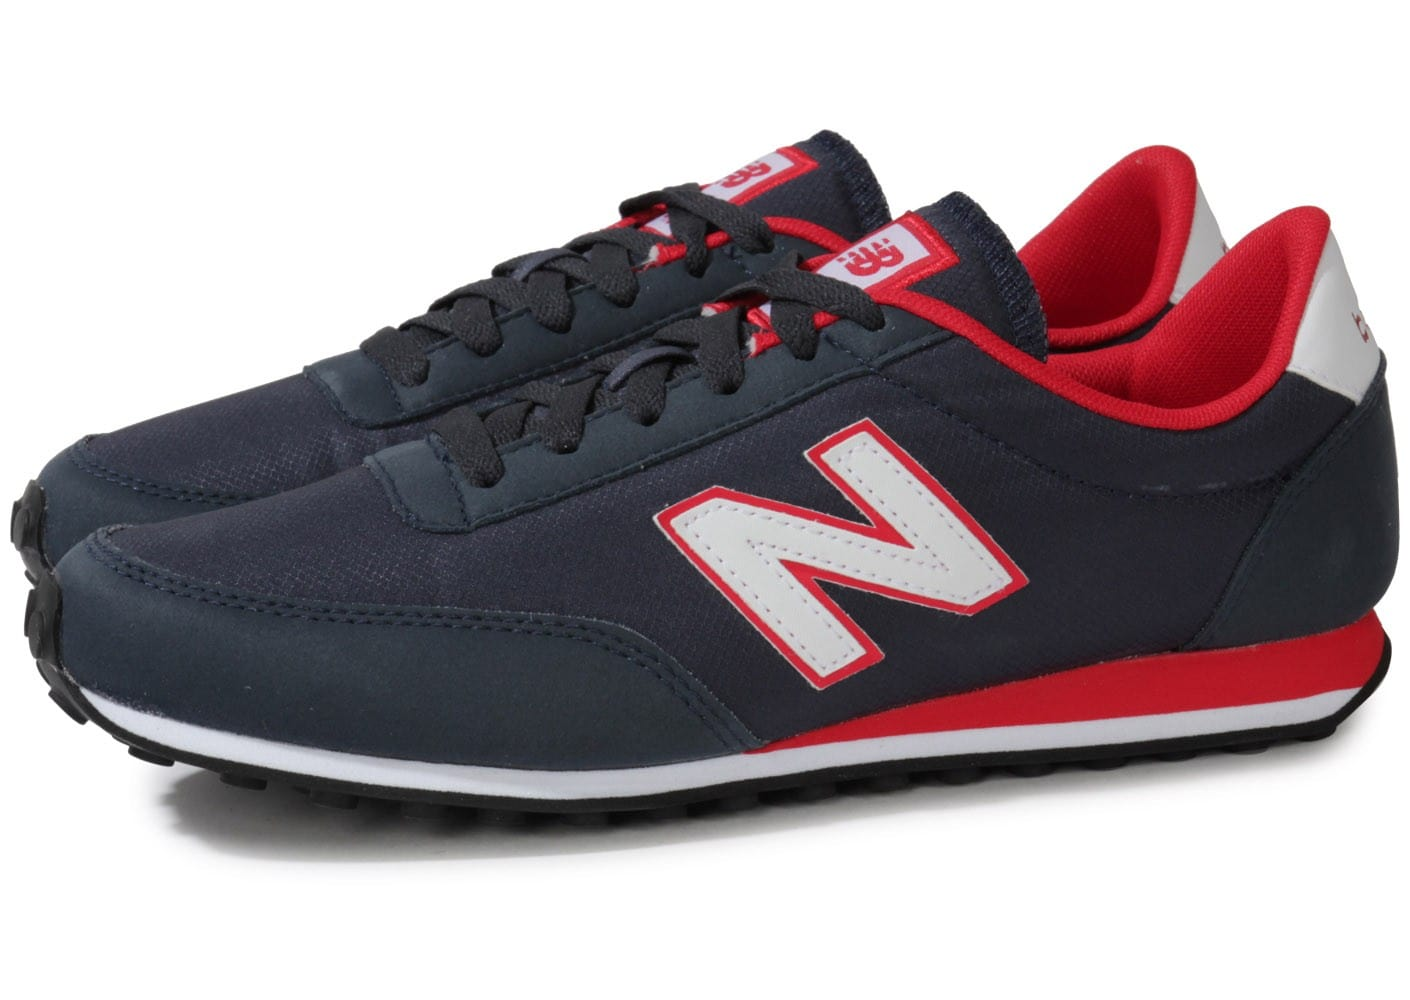 new balance u410 bleu marine rouge chaussures homme. Black Bedroom Furniture Sets. Home Design Ideas